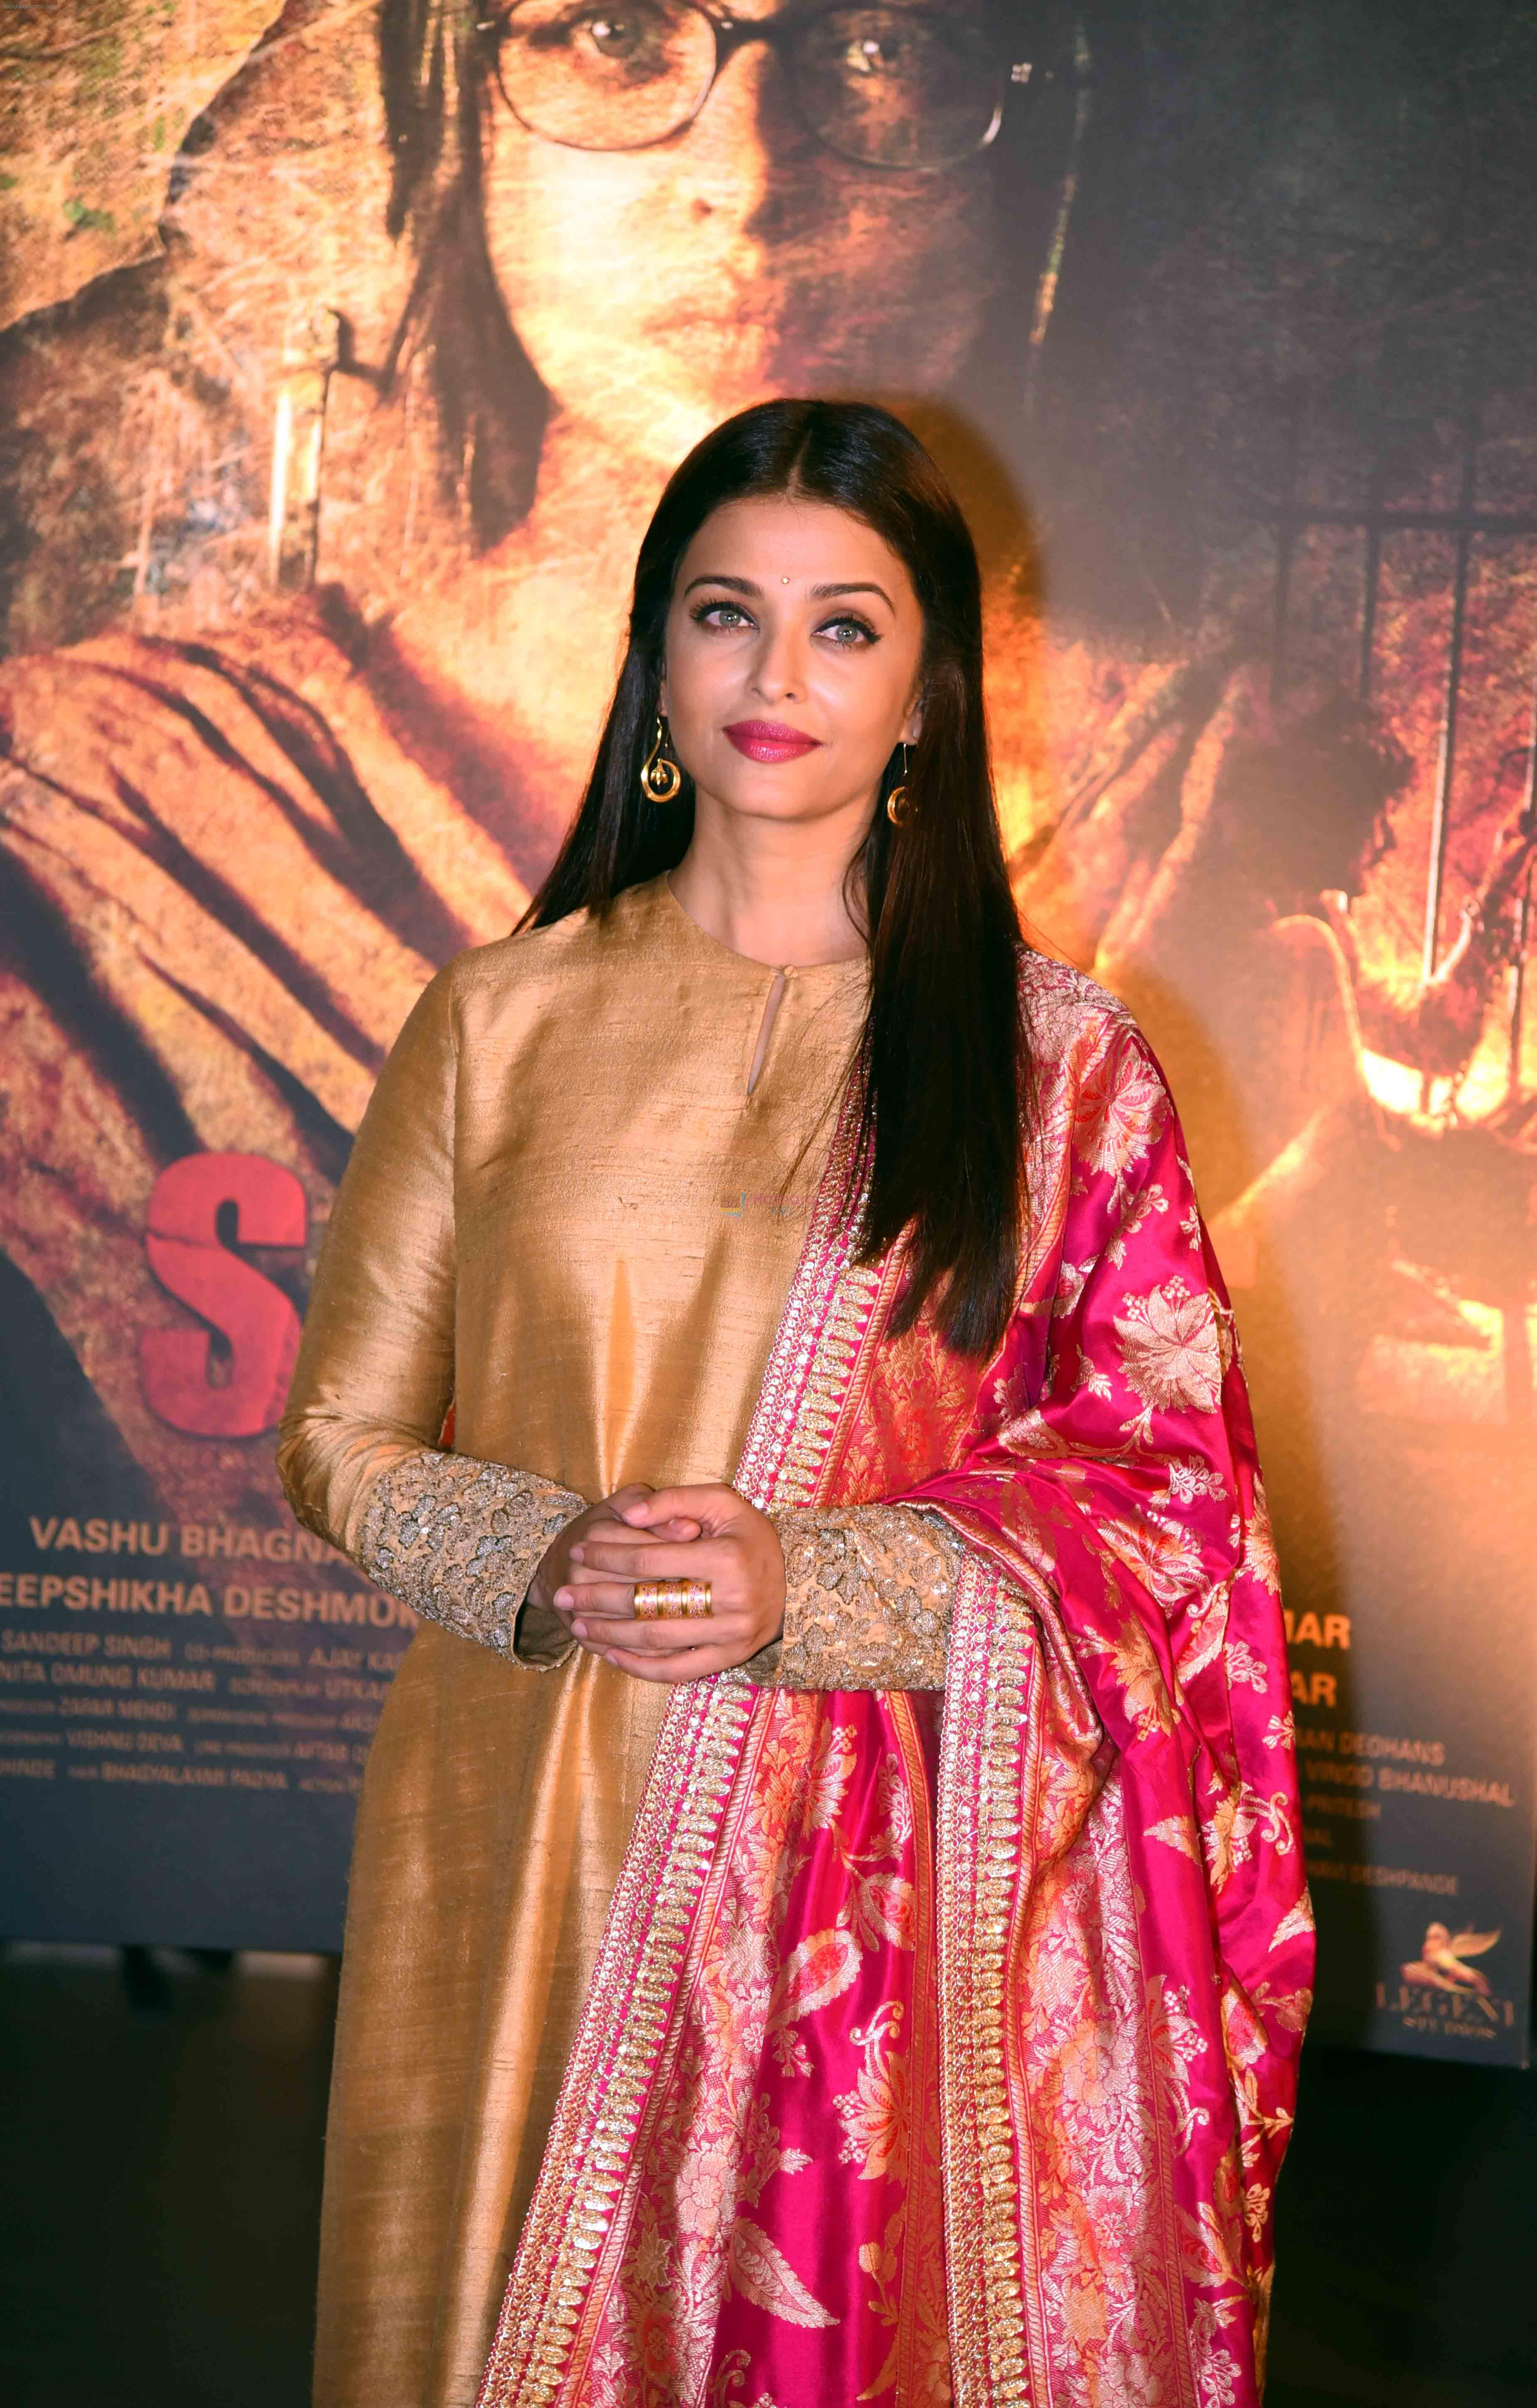 Aishwarya Rai Bachchan at the first look launch of Sarbjit in Delhi on 29th Feb 2016